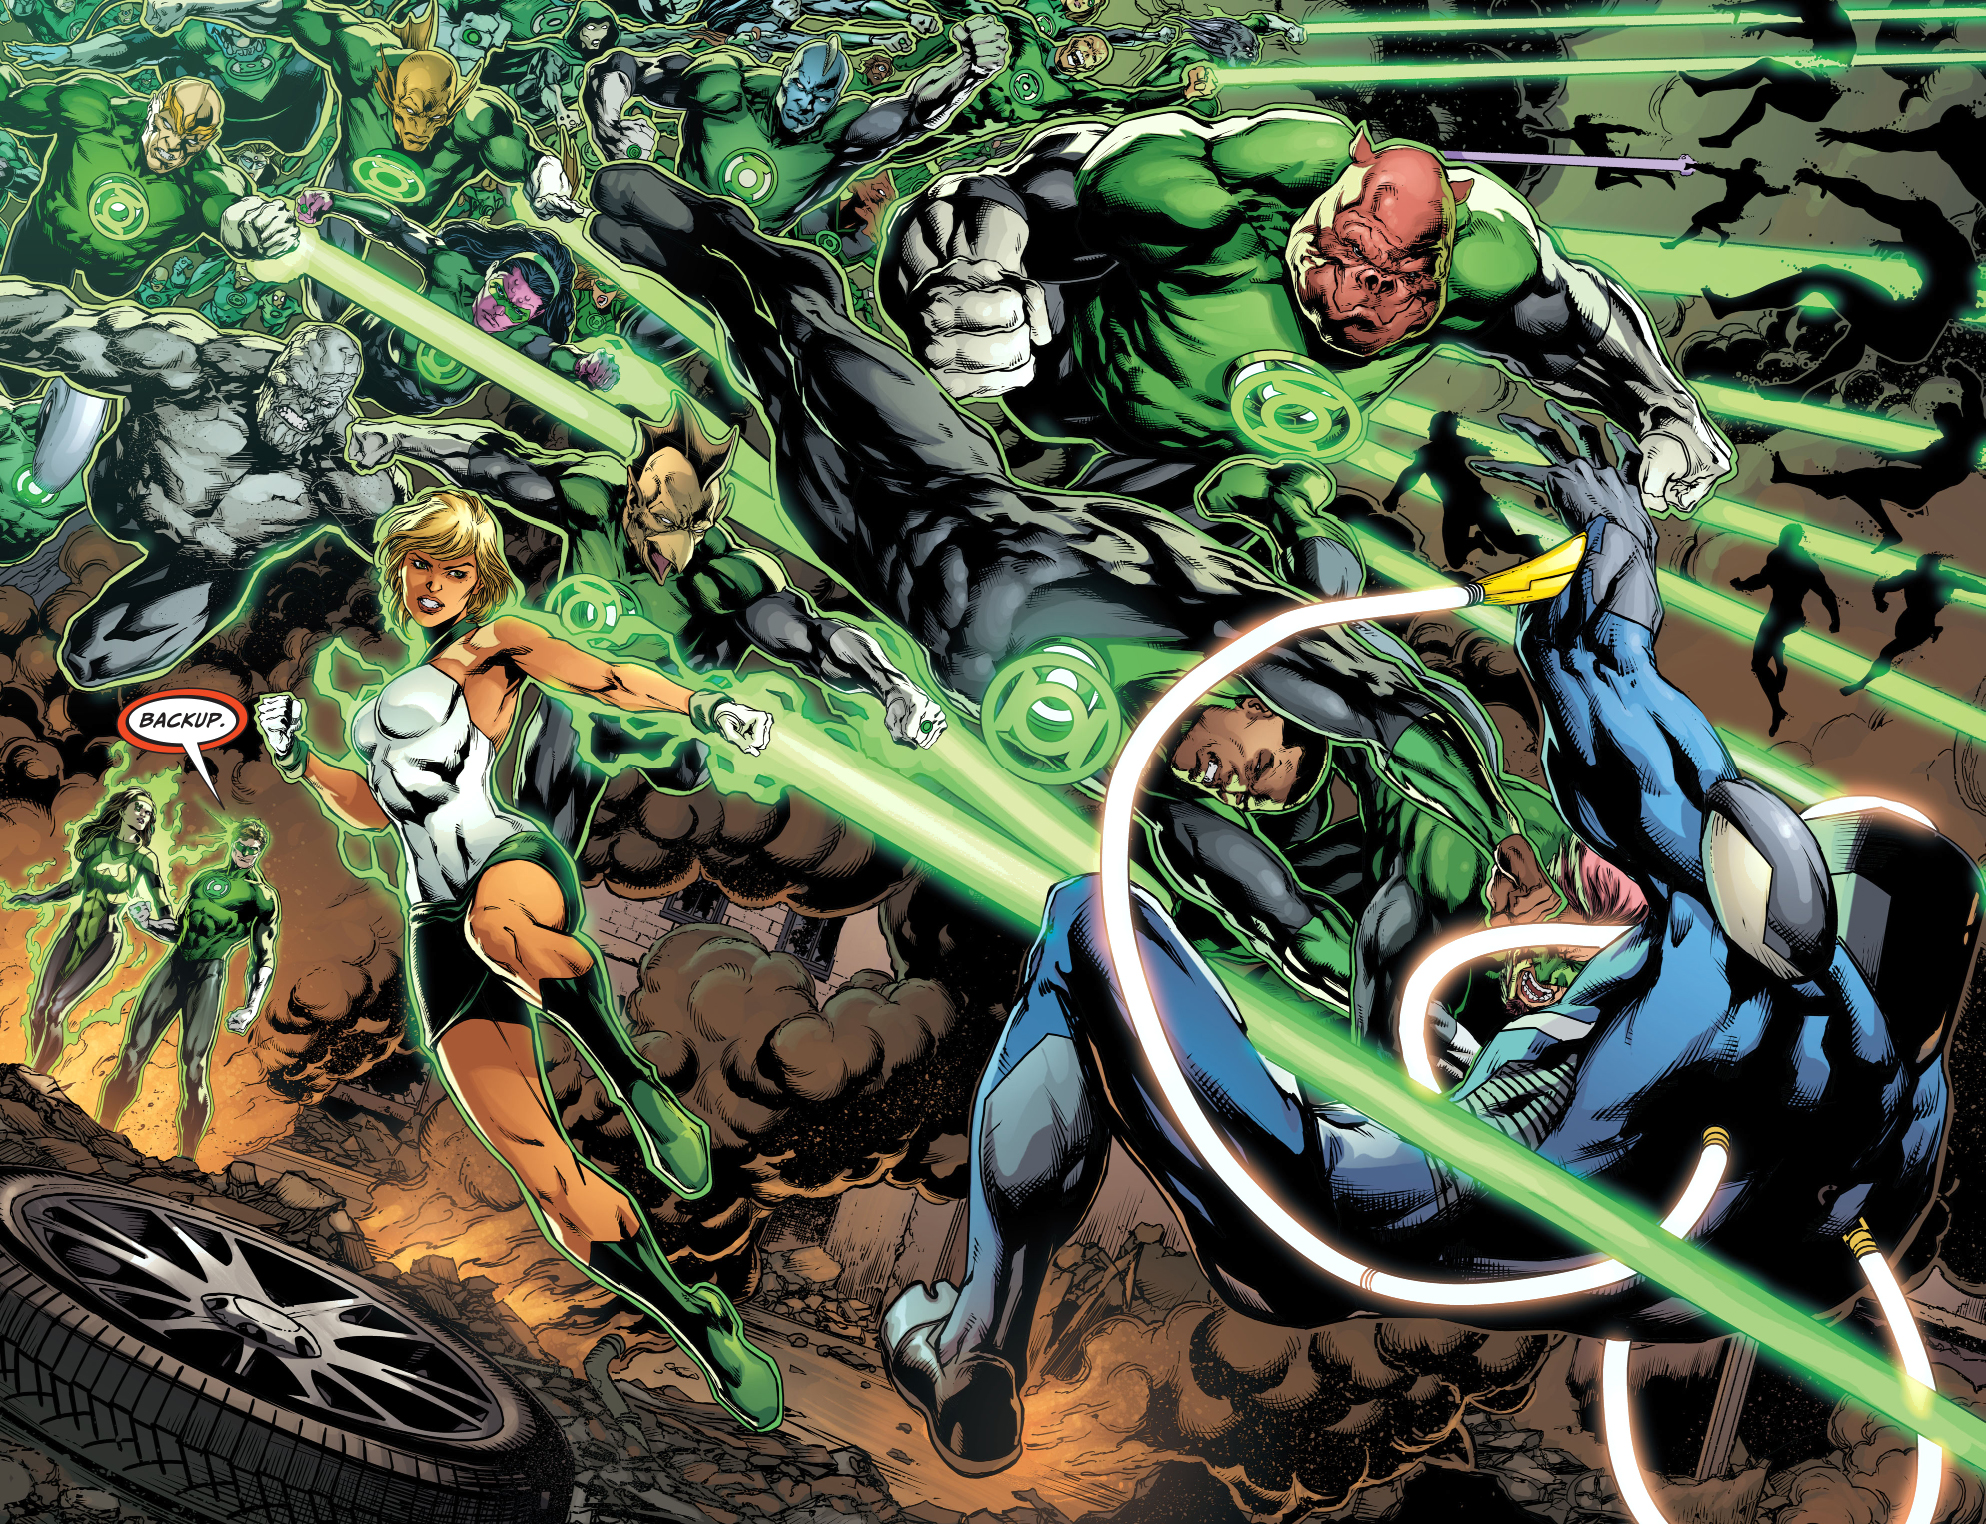 Green lantern ring comic - photo#13